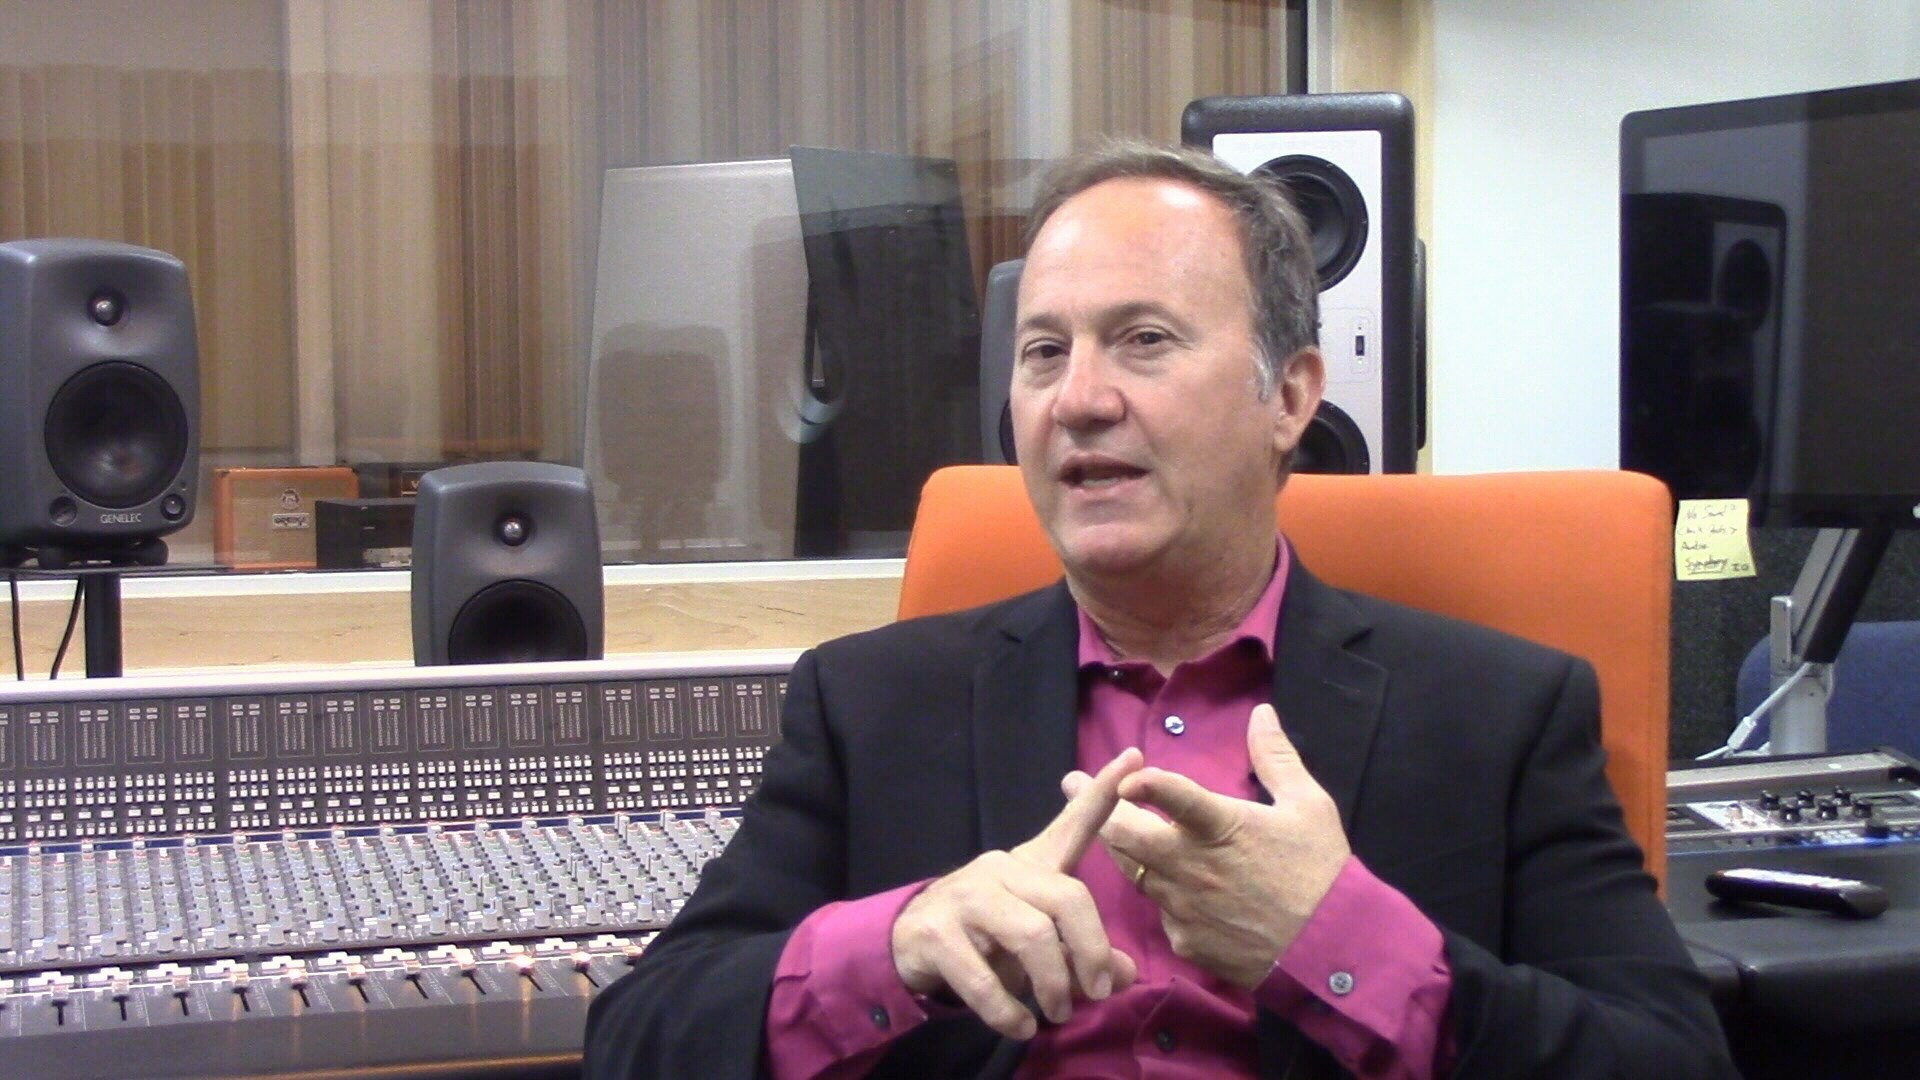 Dr. Paul Bissell heads up the SRT program. He describes it as the intersection of musical skills and technical skills